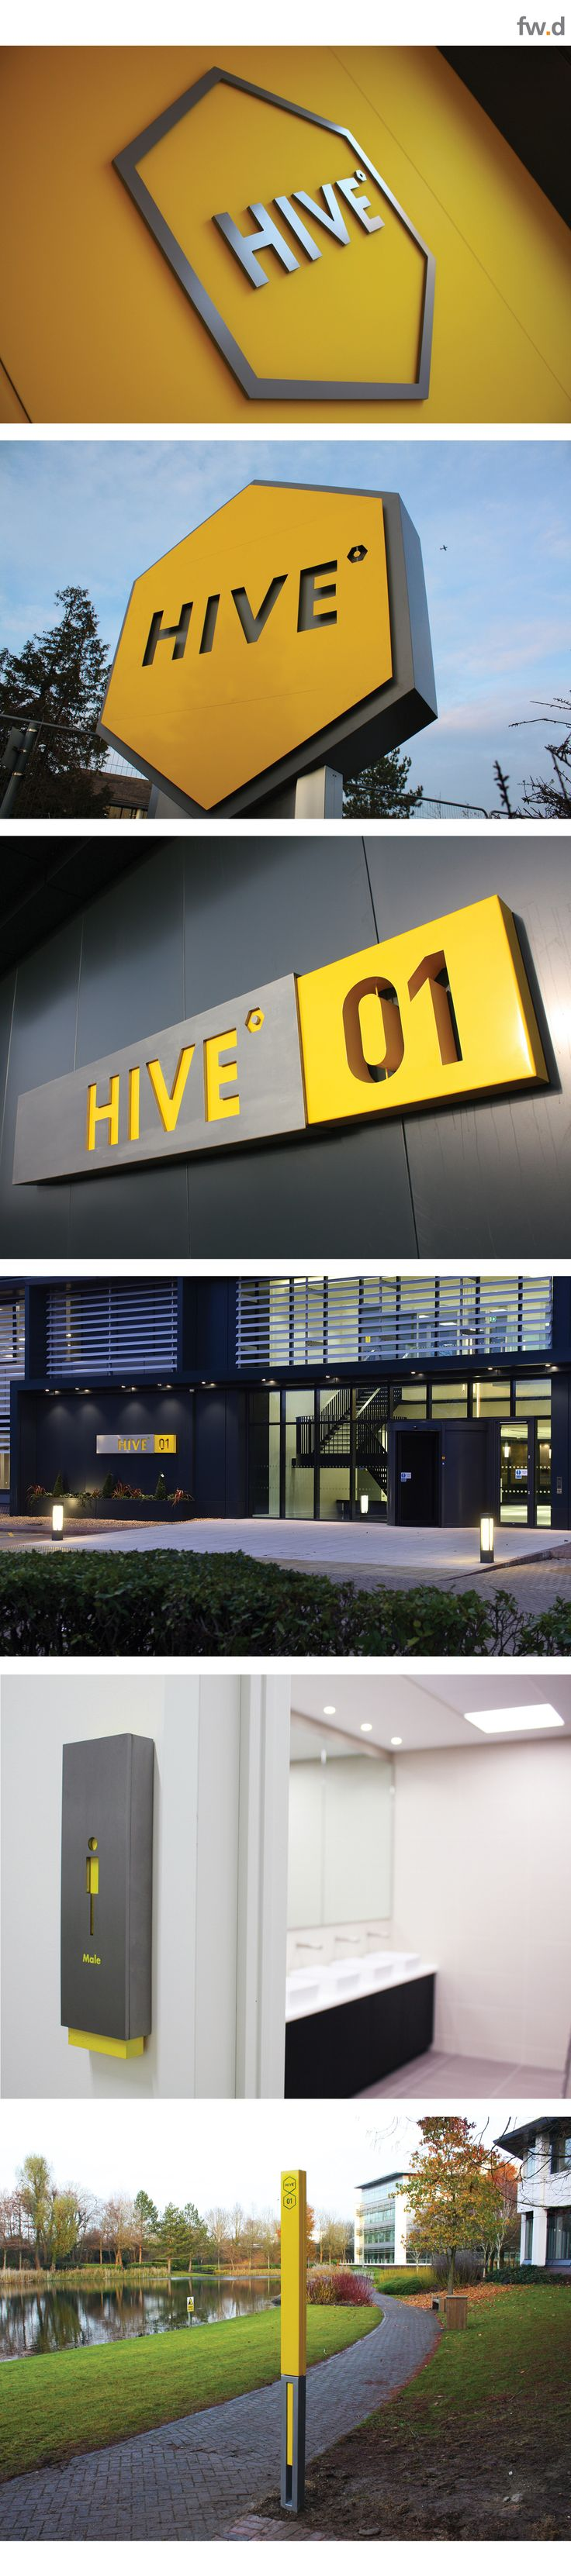 fwdesign developed a bespoke wayfinding and information system for The Hive, an exciting collaborative working environment, set amongst stunning lakes and landscaped grounds creating an inspirational and motivational working environment.